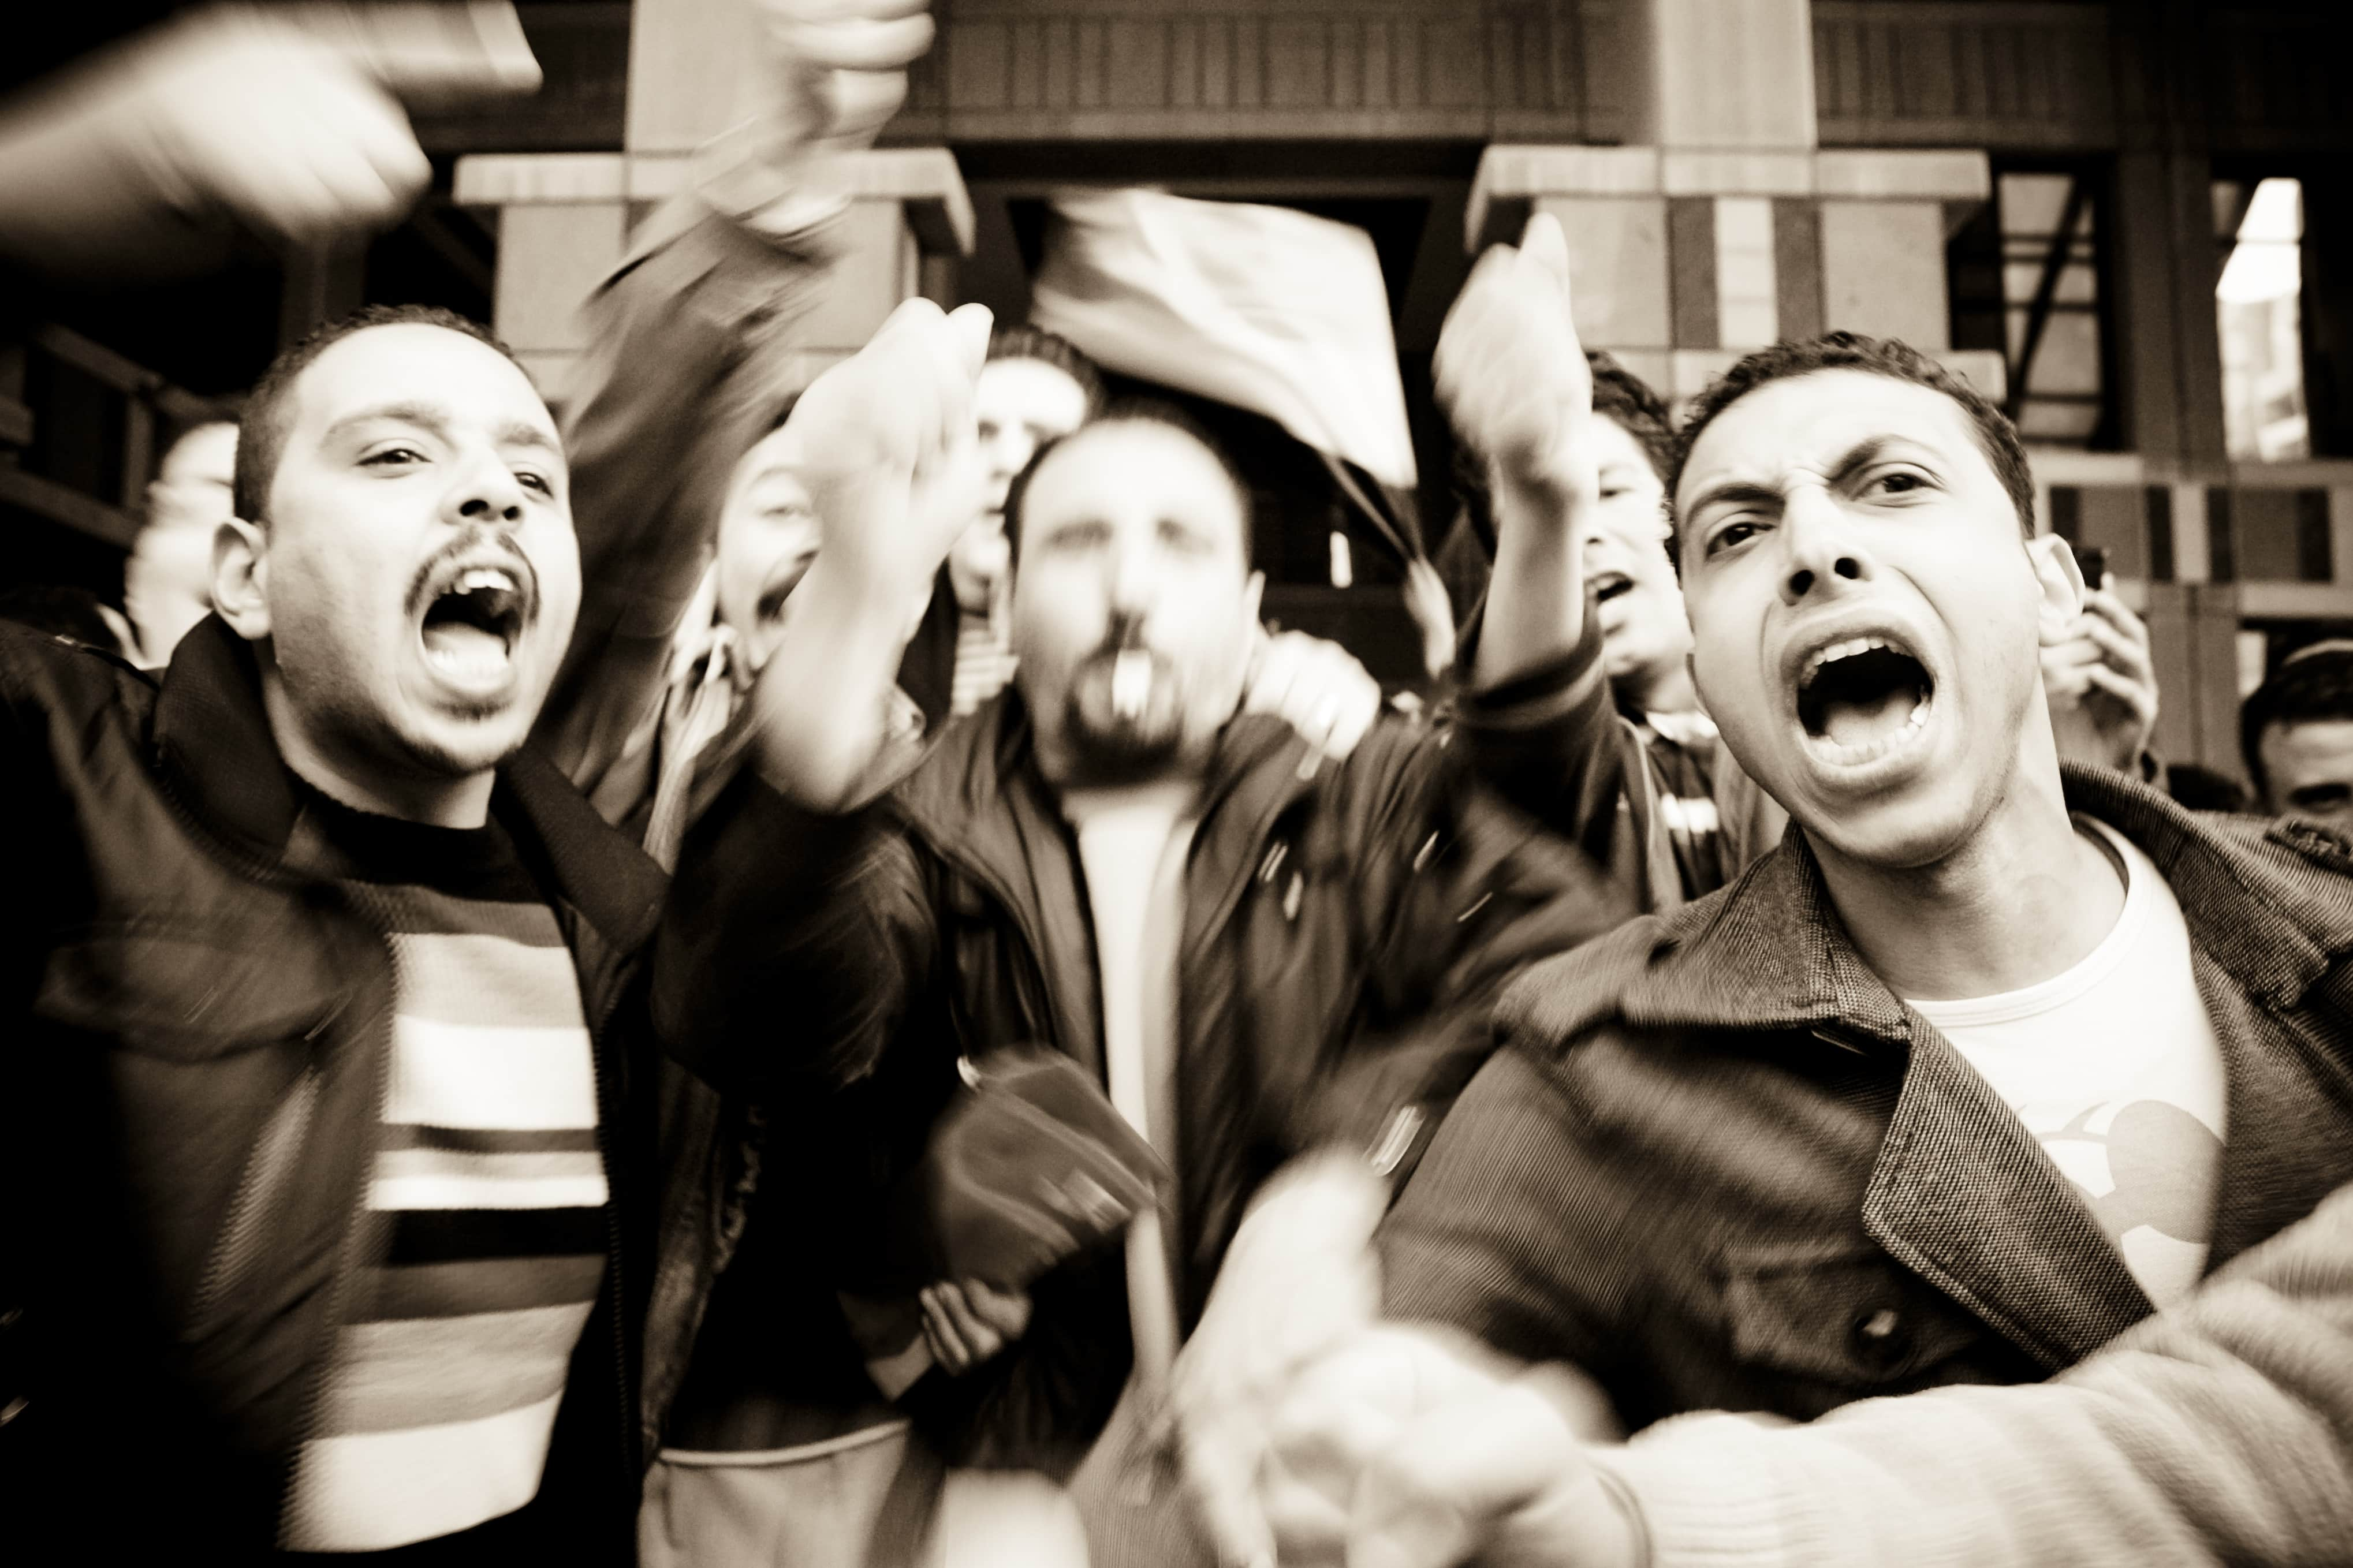 Egypt: Oil and Gas Workers on Strike